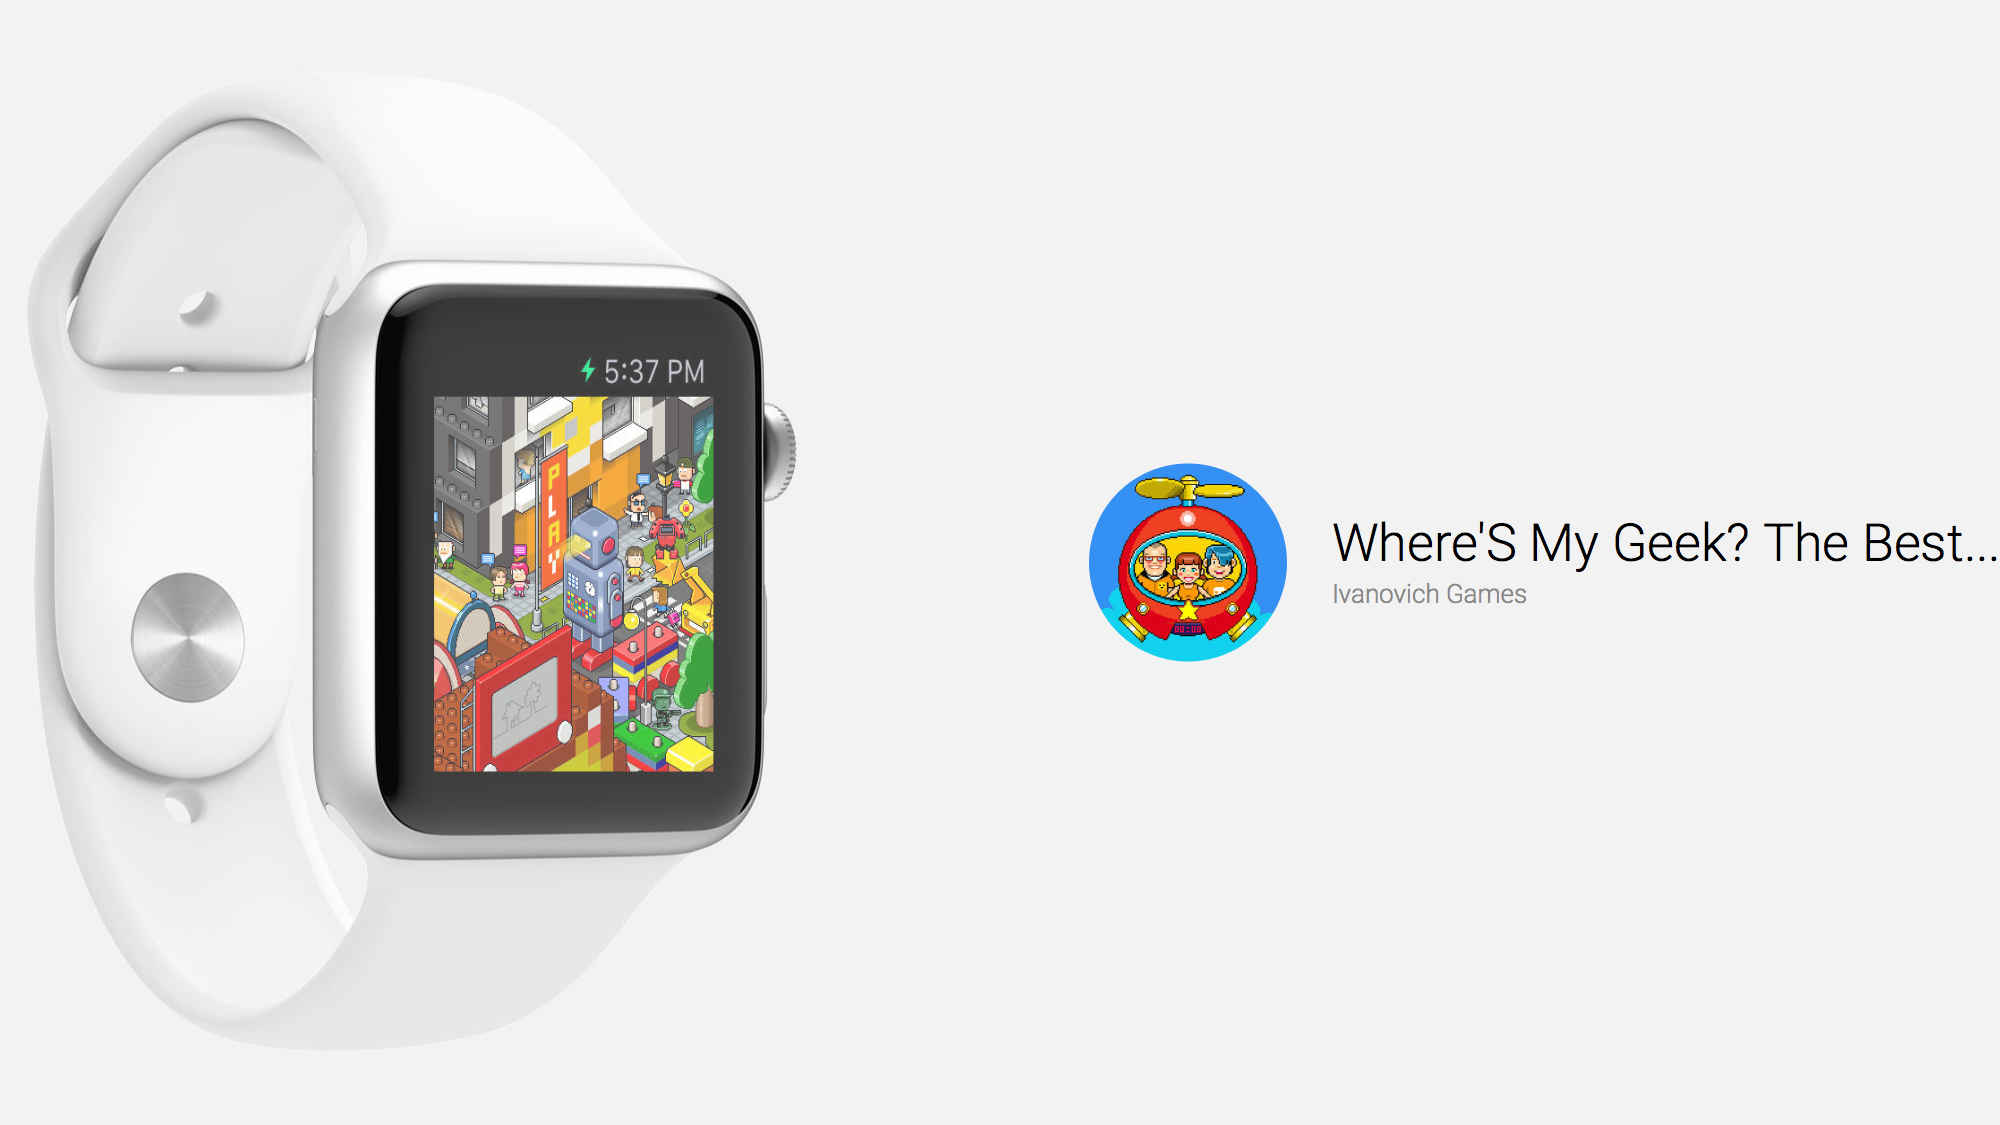 Where's My Geek? Hidden Object Game on Apple Watch